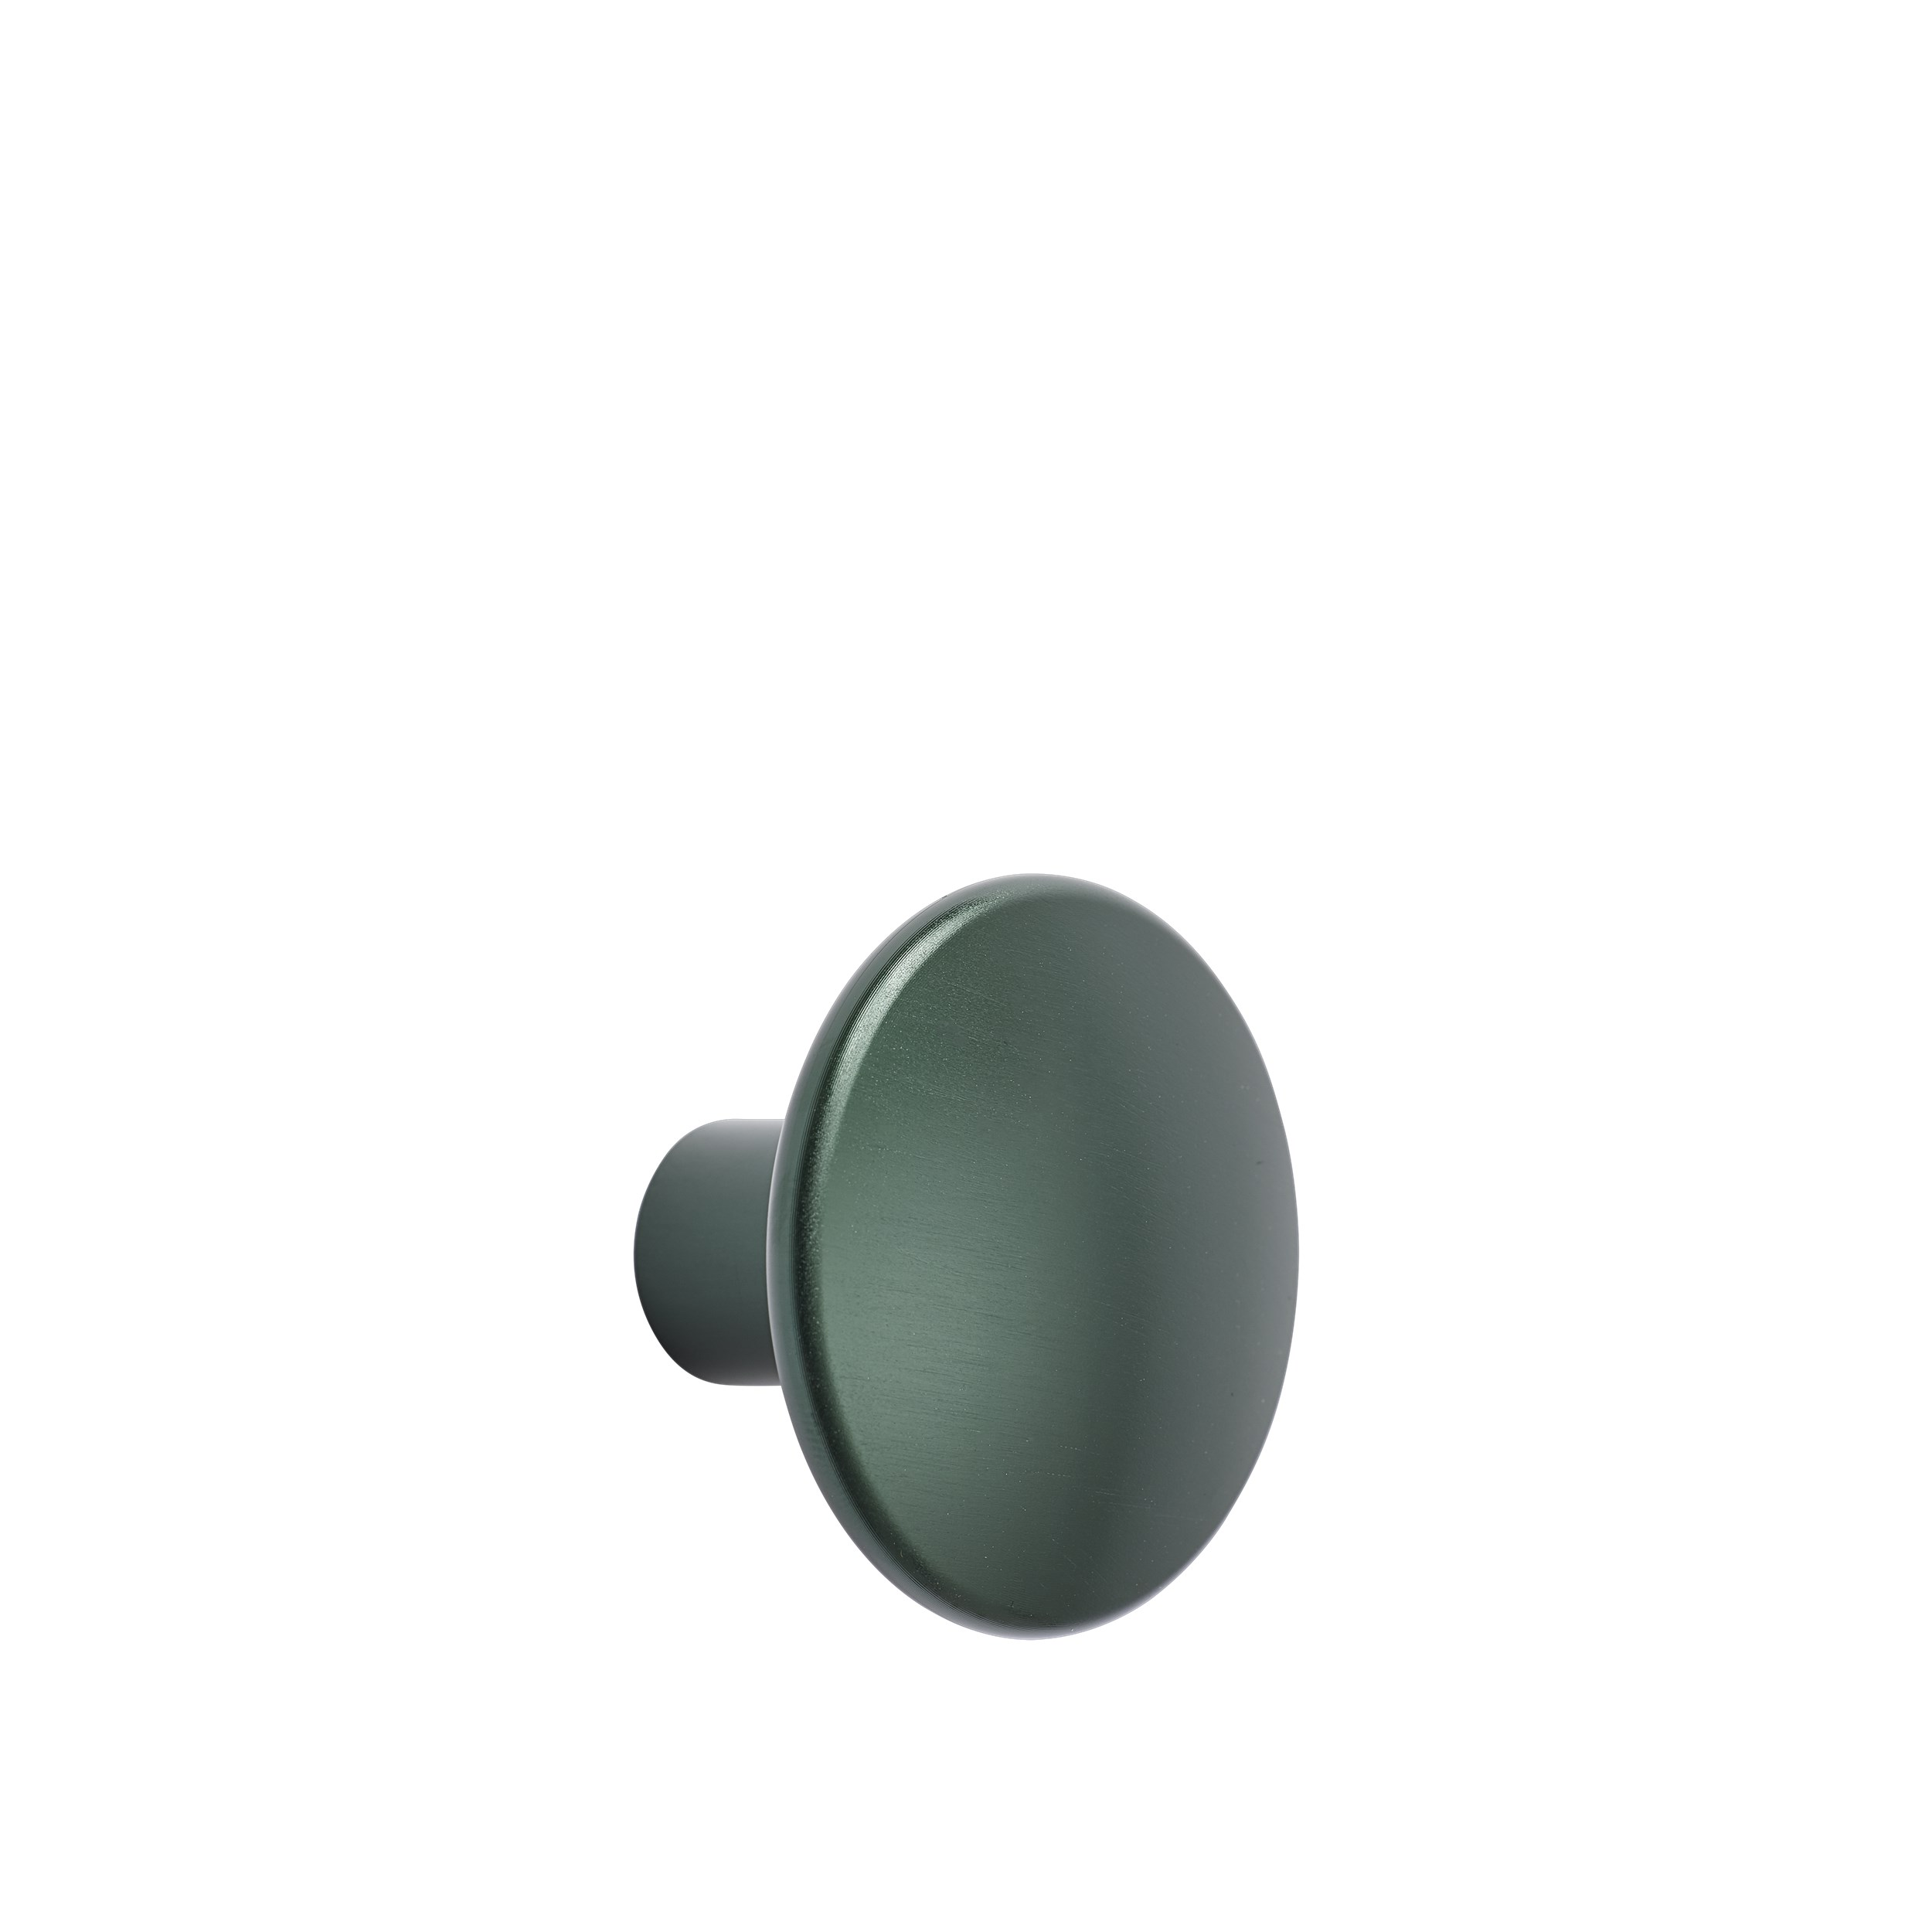 Dots metal medium Ø 3,9 cm dark green